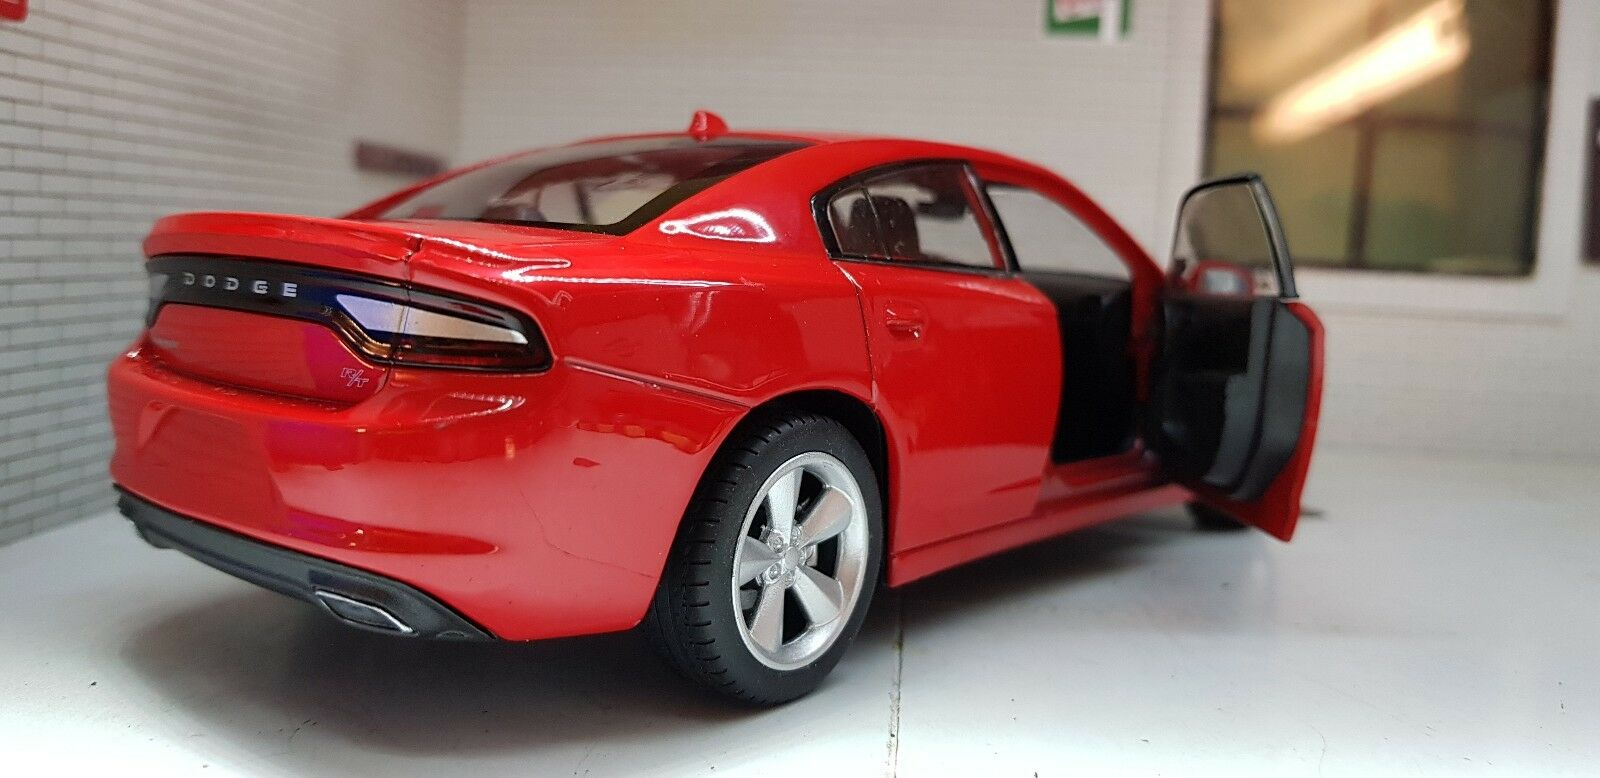 LGB G 1 24 Scale Red Dodge Charger Charger Charger V8 R T 2016 Welly Detailed Diecast Model Car c2e275